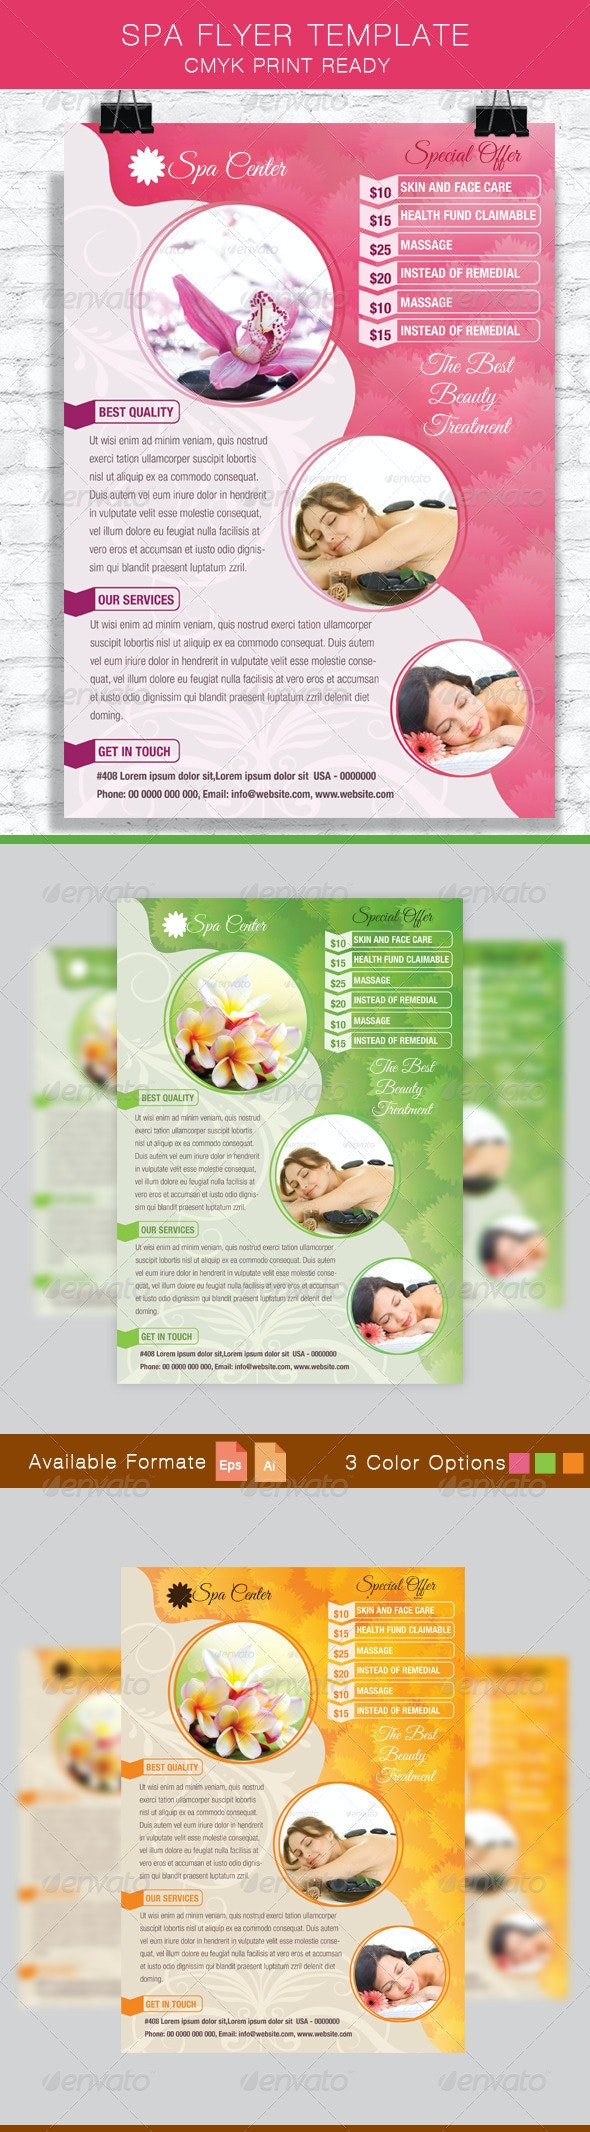 Spa Flyer Template - Commerce Flyers